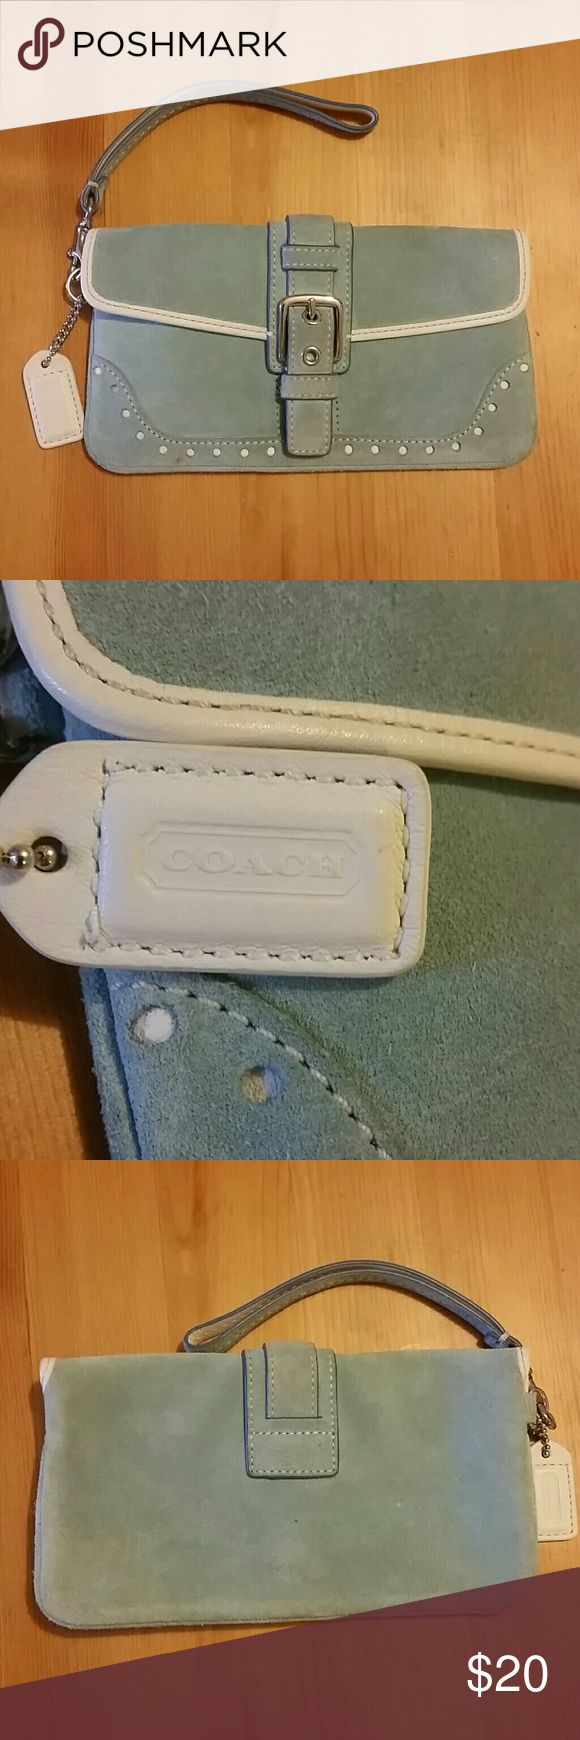 Blue Coach Wristlet Has been used and could use a little cleaning on outside, but otherwise in good/decent condition! Inside is very clean. Selling cheap to make more room in my closet! Make an offer! Coach Bags Clutches & Wristlets